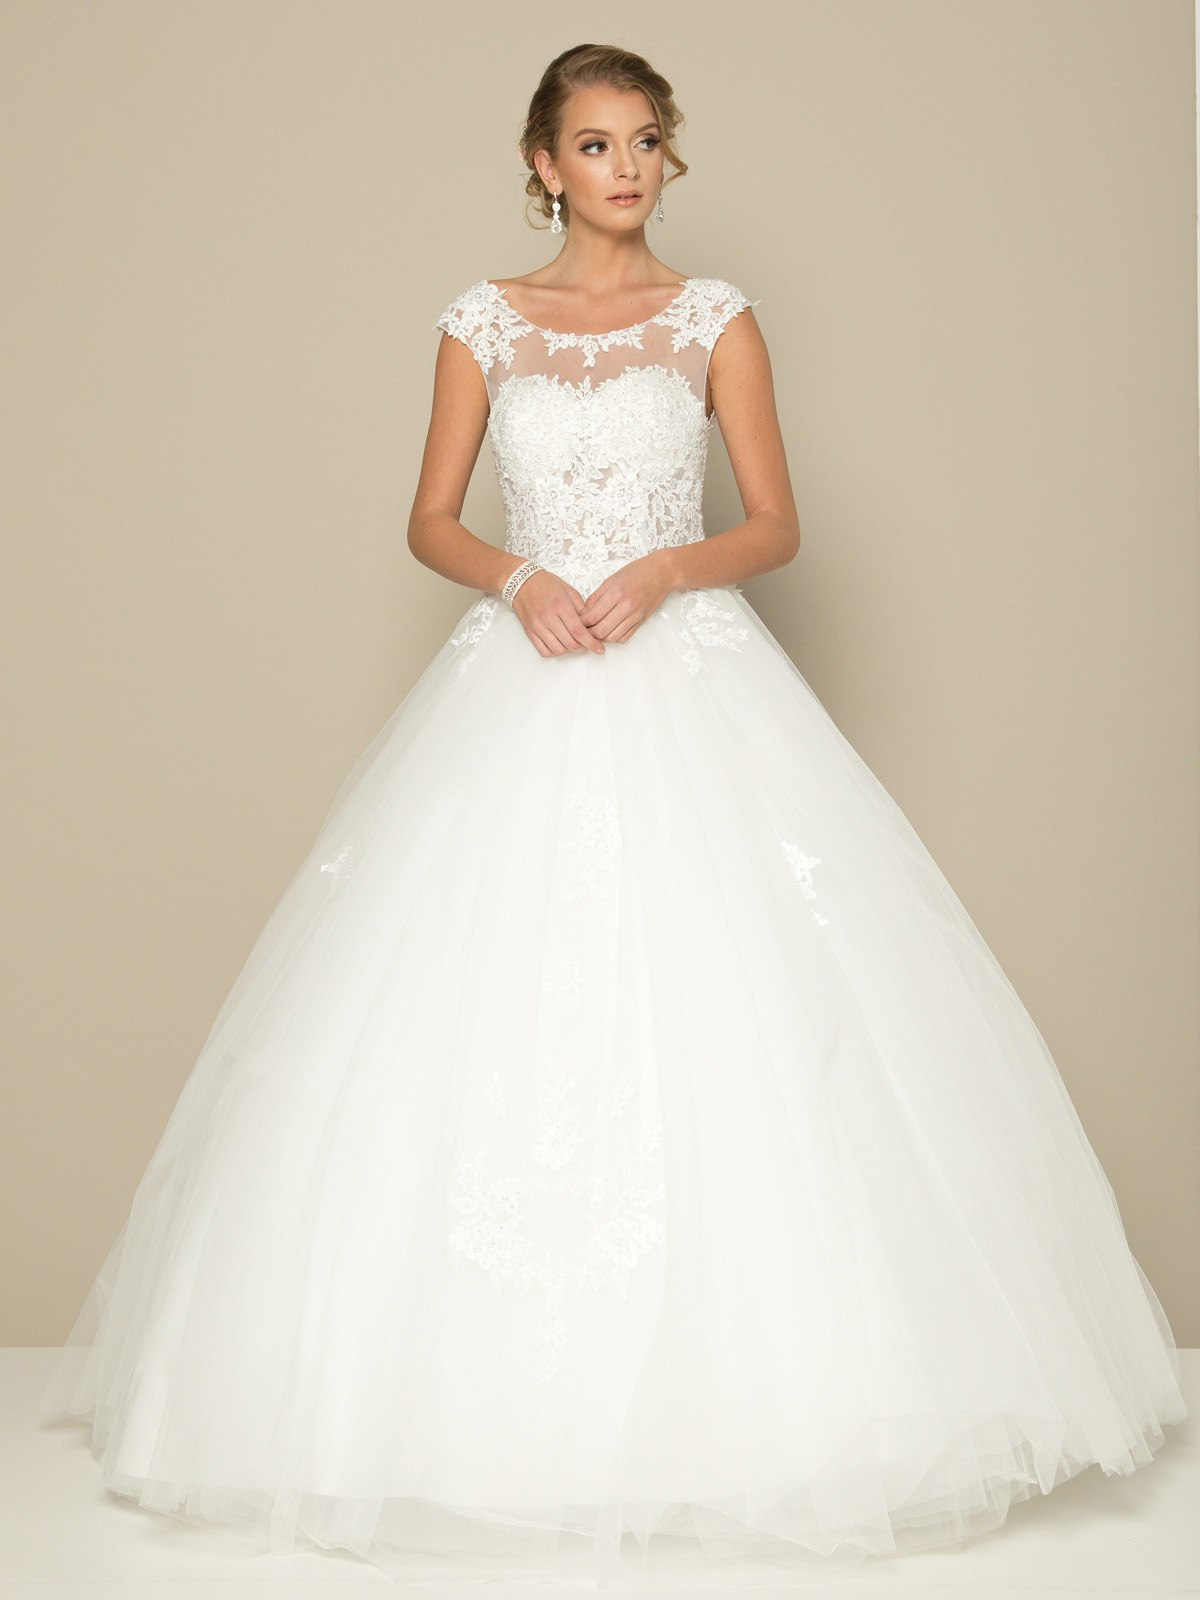 Juliet 386 Open Lace Up Back Appliqued Wedding Ball Gown White